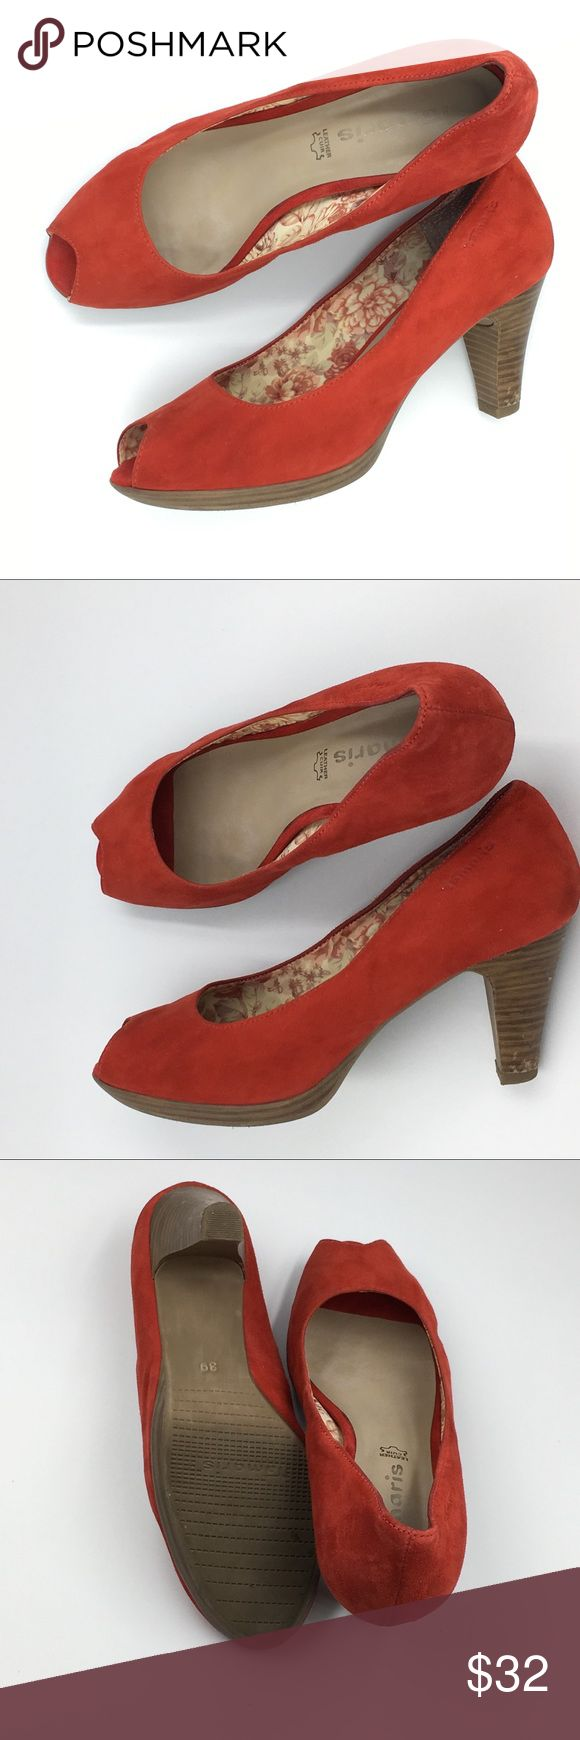 Tamaris red leather peep-toe heel pumps Worn 3 times, indise. Very good condition. Bought in France. Leather inside, outside, rubber sole(anti adherence). Gorgeous red shade.   Size US 8.5/ EU 39. Good for a wider foot as well.  Make a reasonable offer and I'll either counter, accept or decline. No trades.  Please check out the rest of my closet, I have various brands. Tamaris Shoes Heels